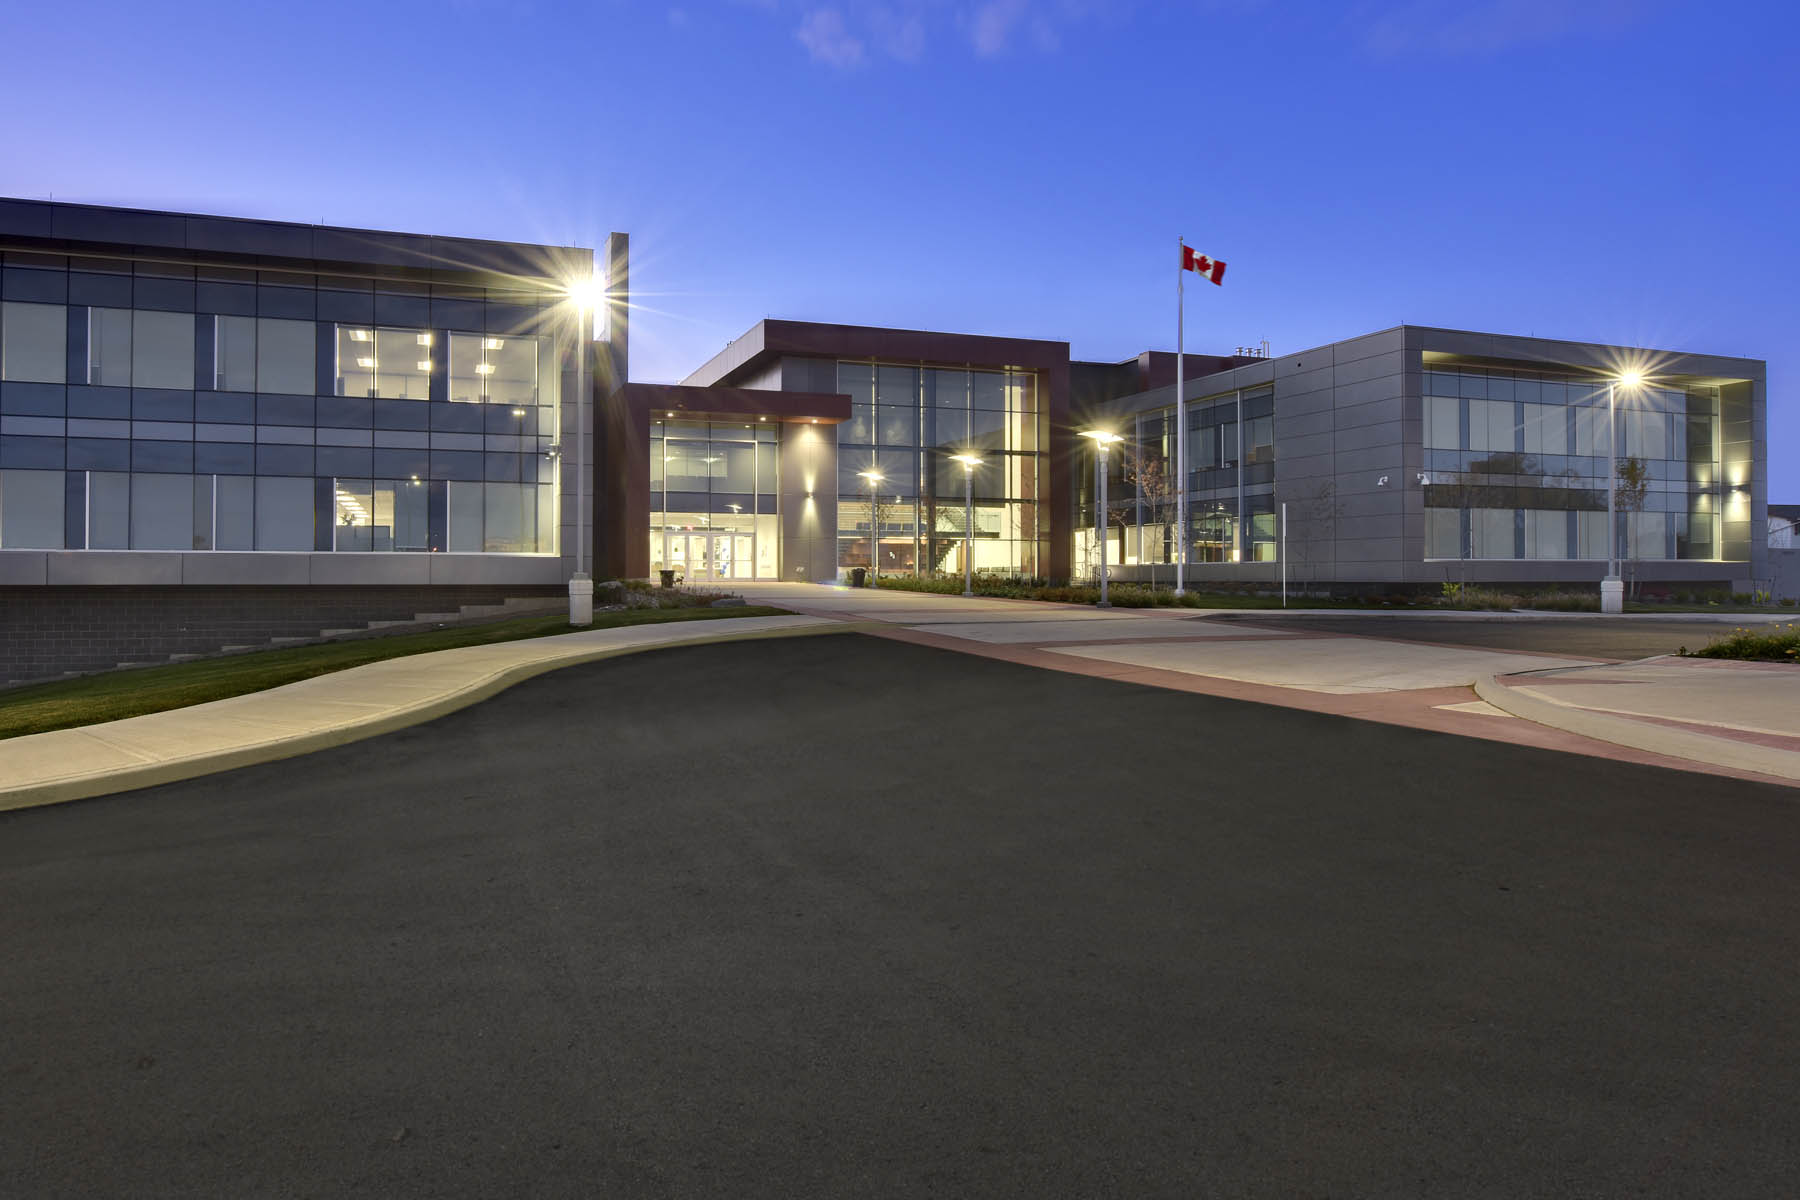 View from parking lot of illuminated two storey building with lamp posts and Canadian flag at dusk